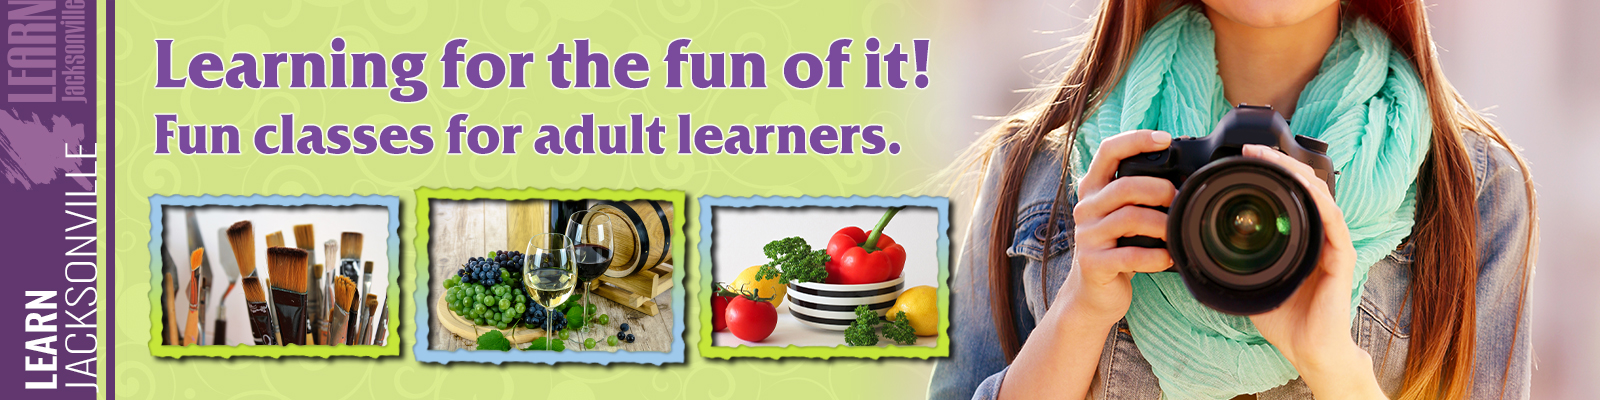 LEARN Jacksonville: Learning For The Fun Of It: Fun Classes for Adult Learners